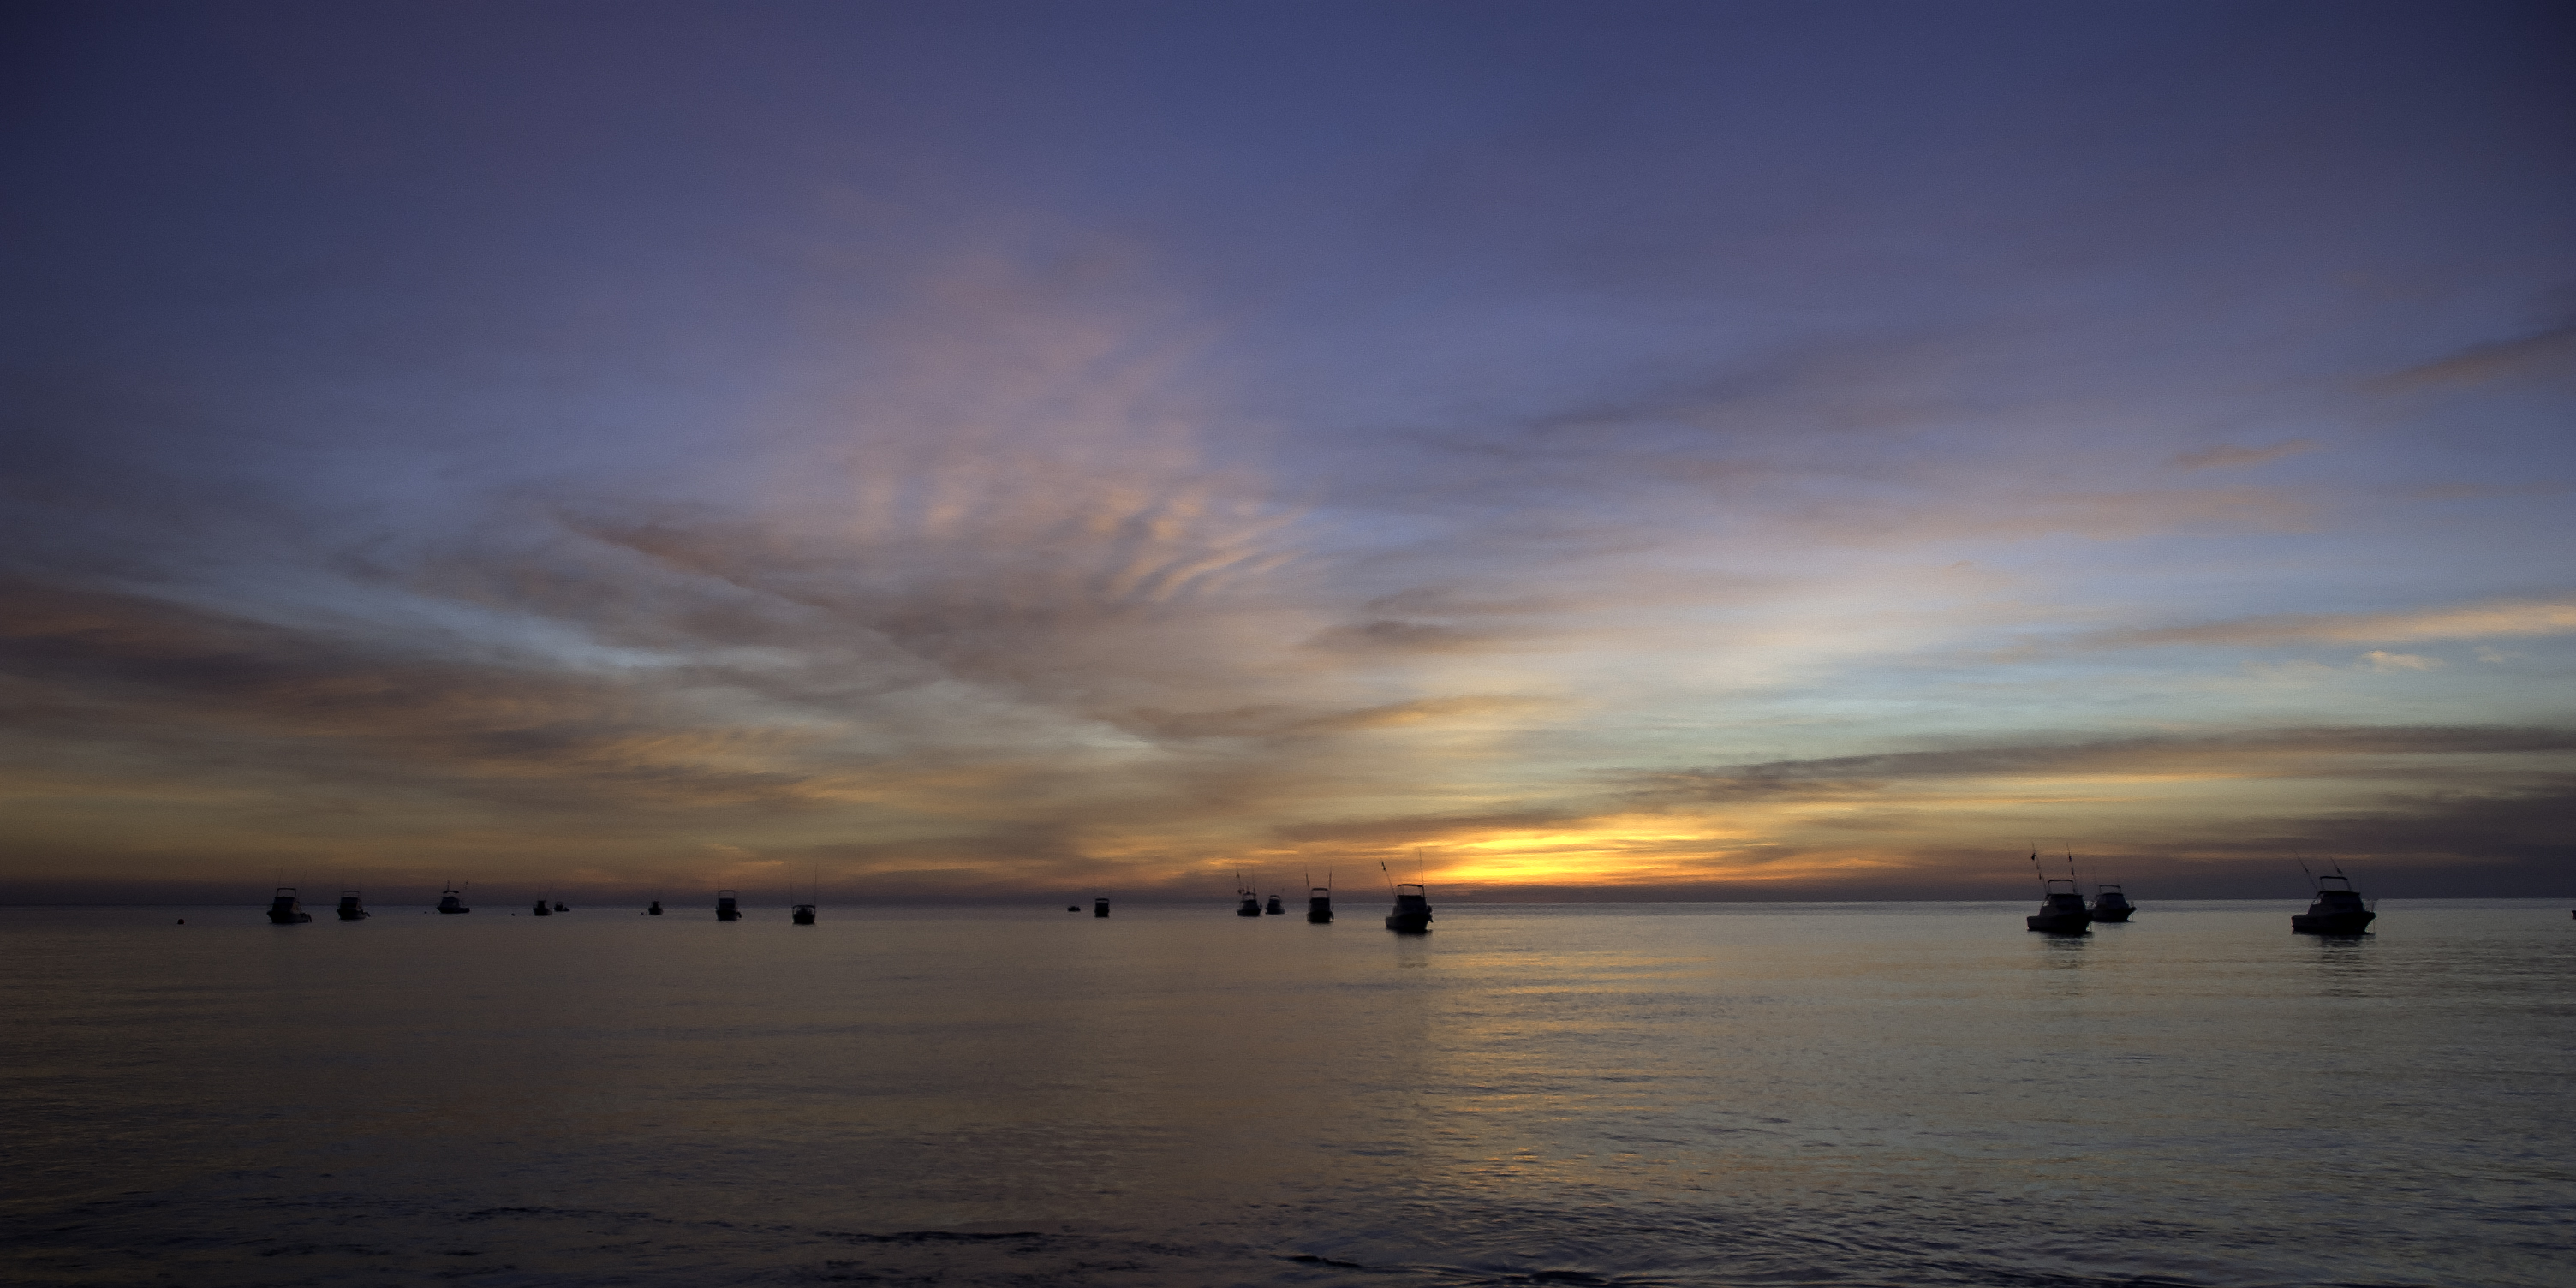 Fishing Fleet (Los Barriles)